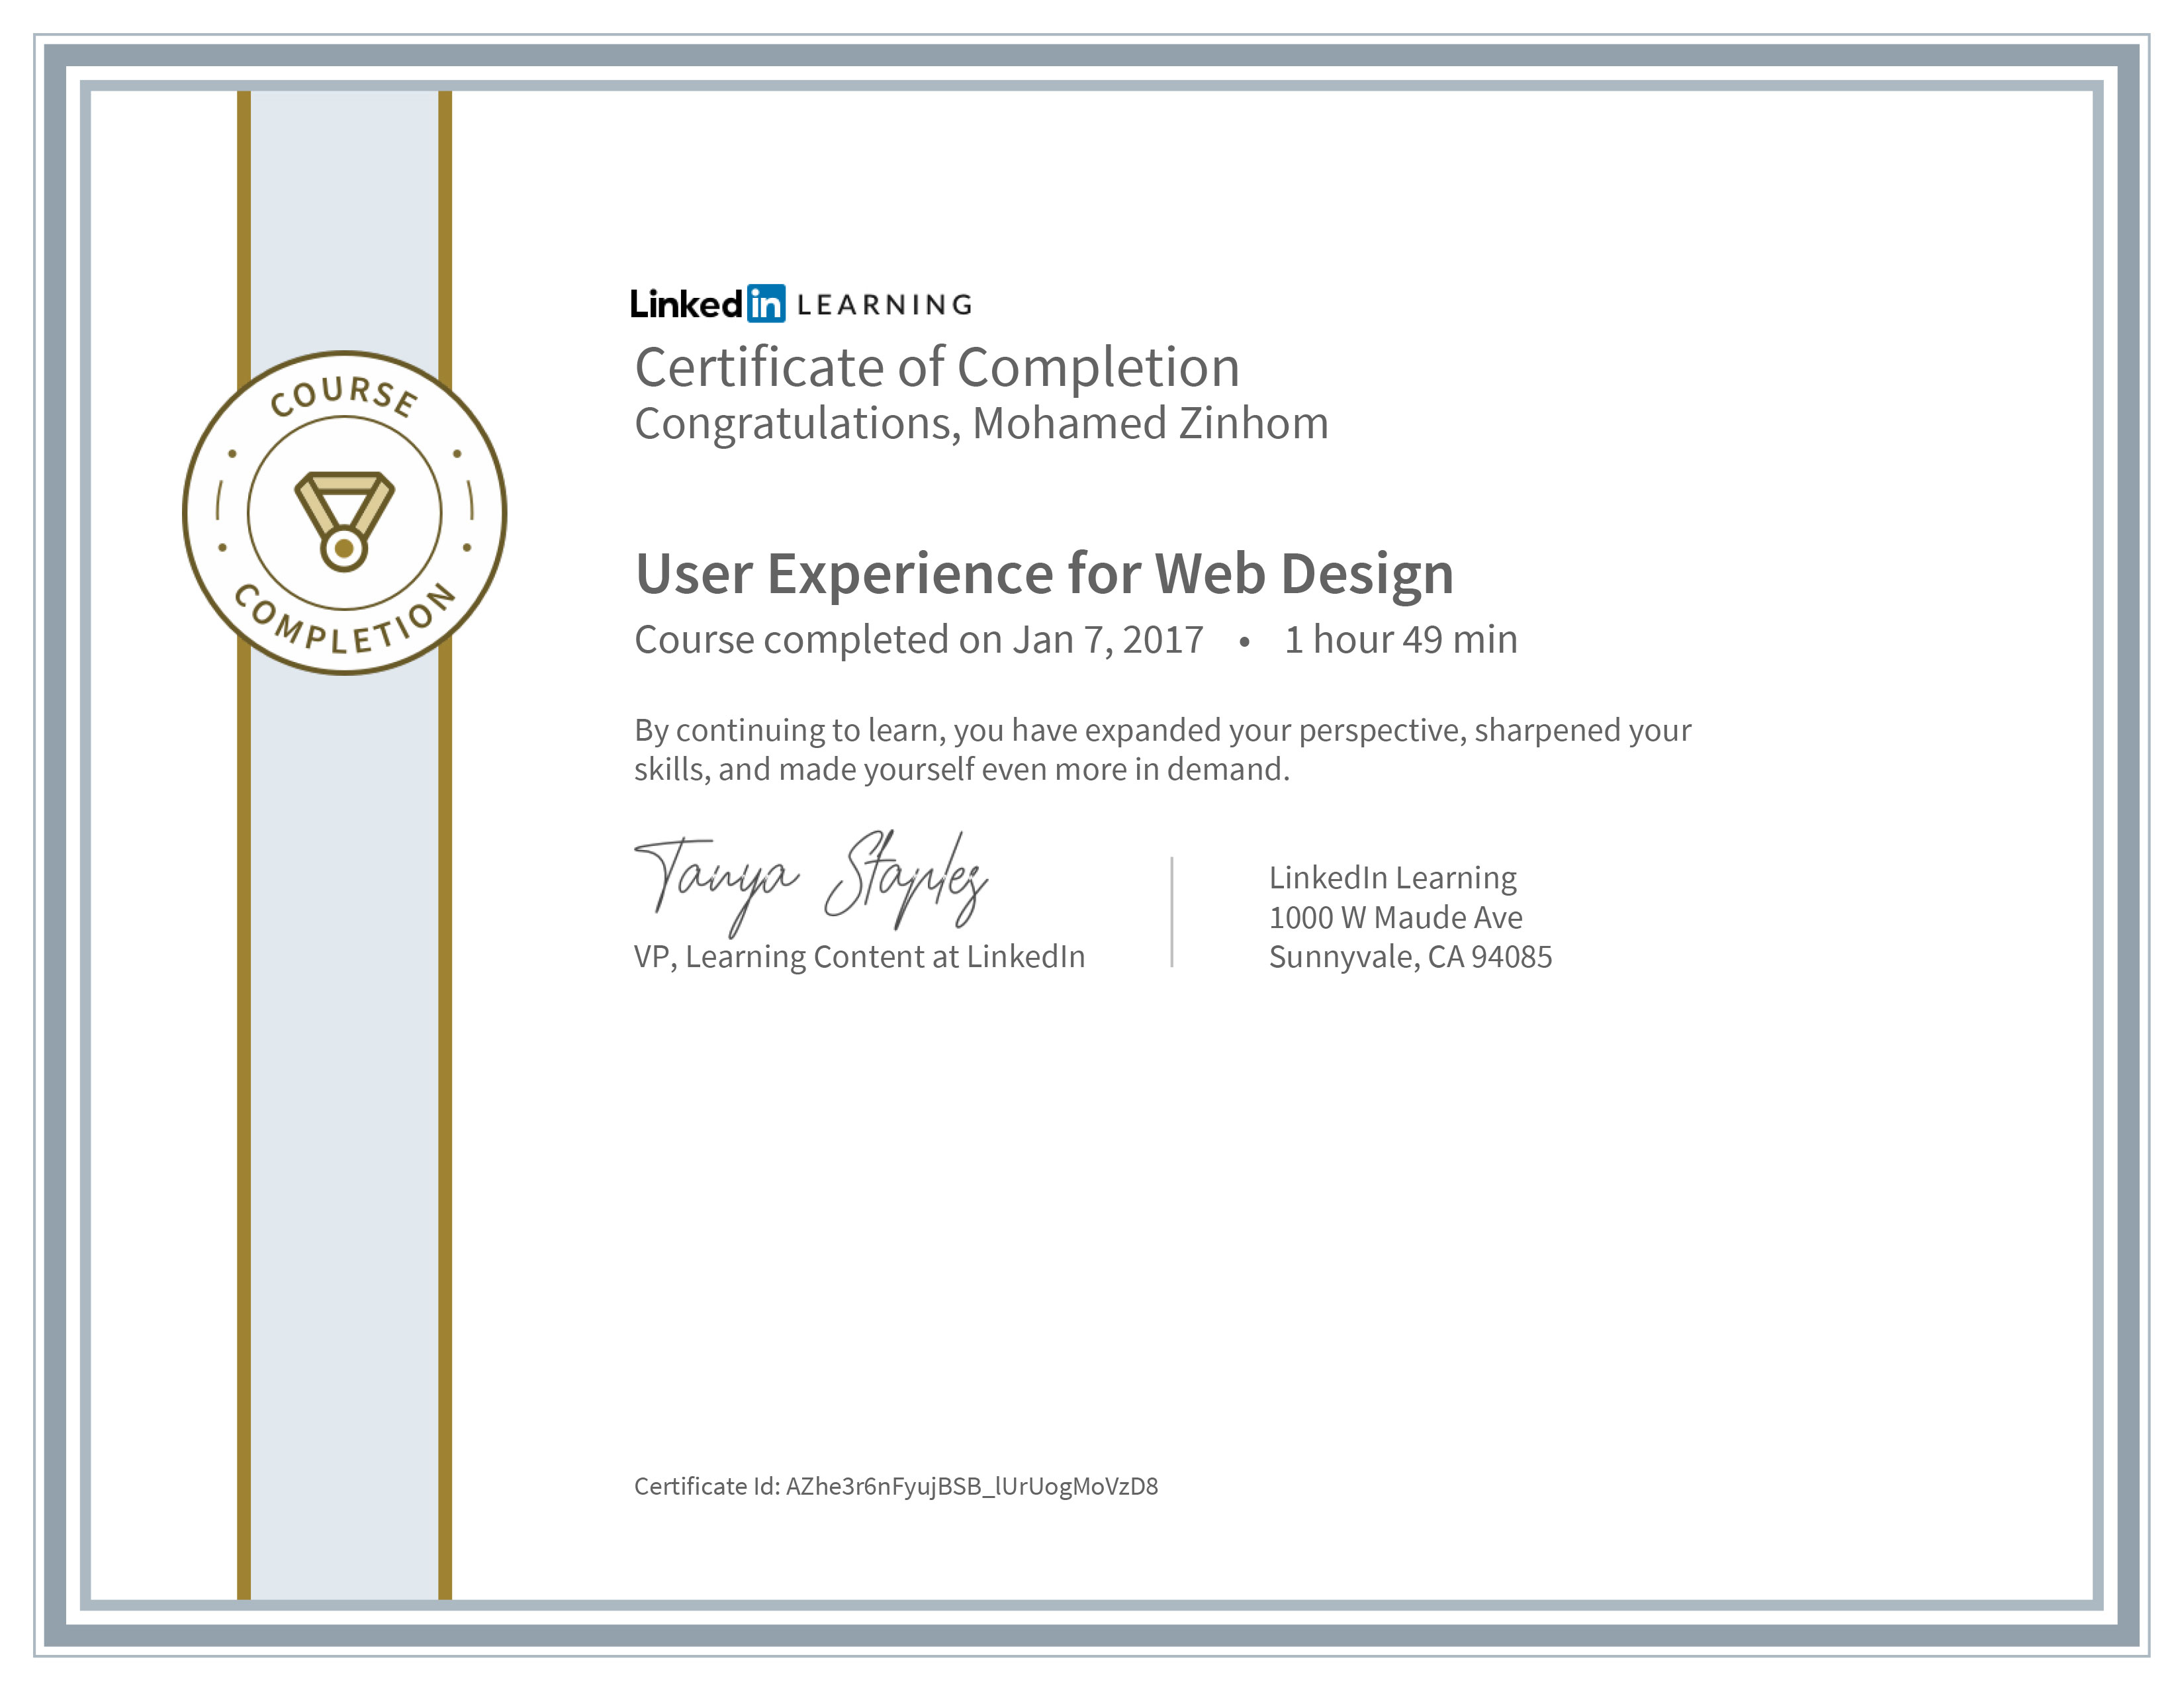 Certificate Of Completion User Experience For Web Design